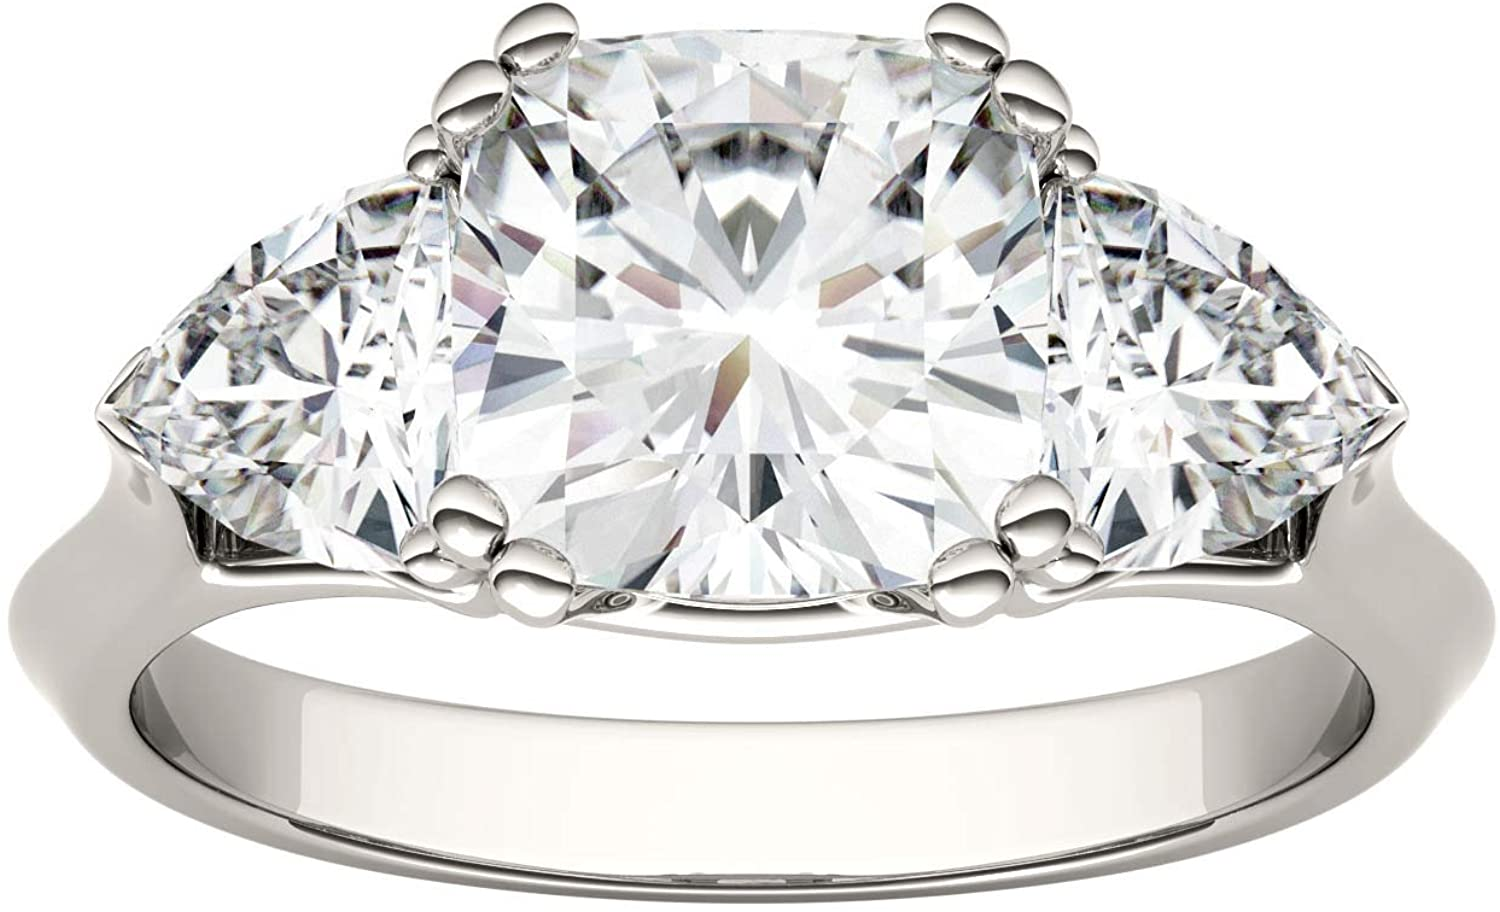 14K White Gold Moissanite by Charles & Colvard 7.5mm Cushion Engagement Ring, 3.00cttw DEW